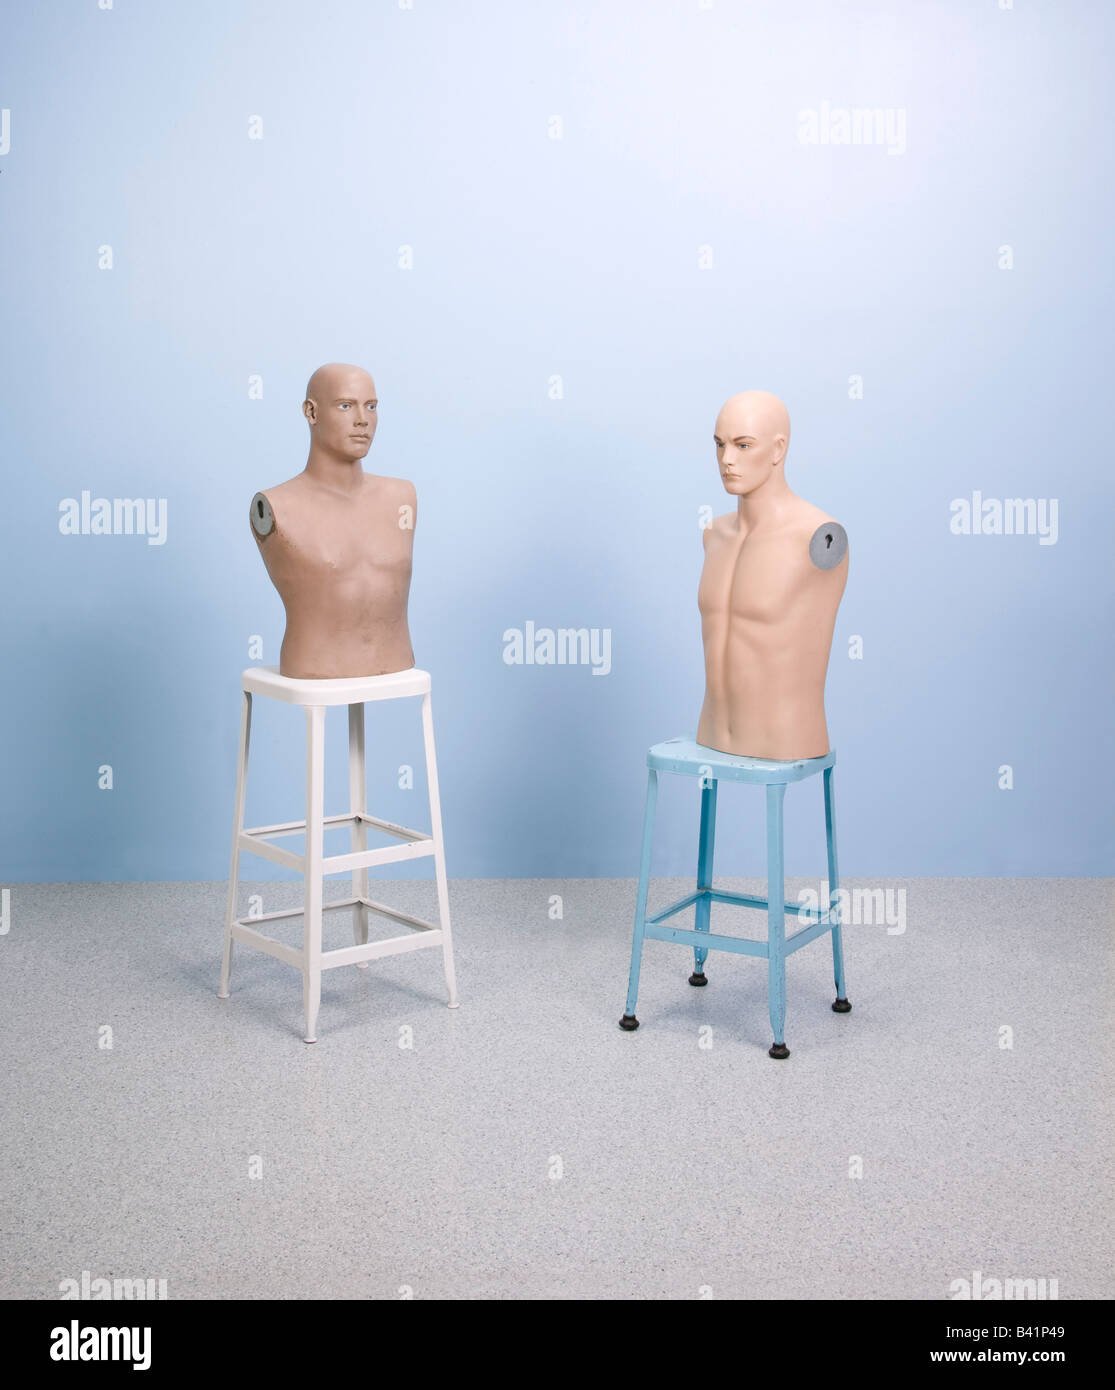 mannequins on stools - Stock Image